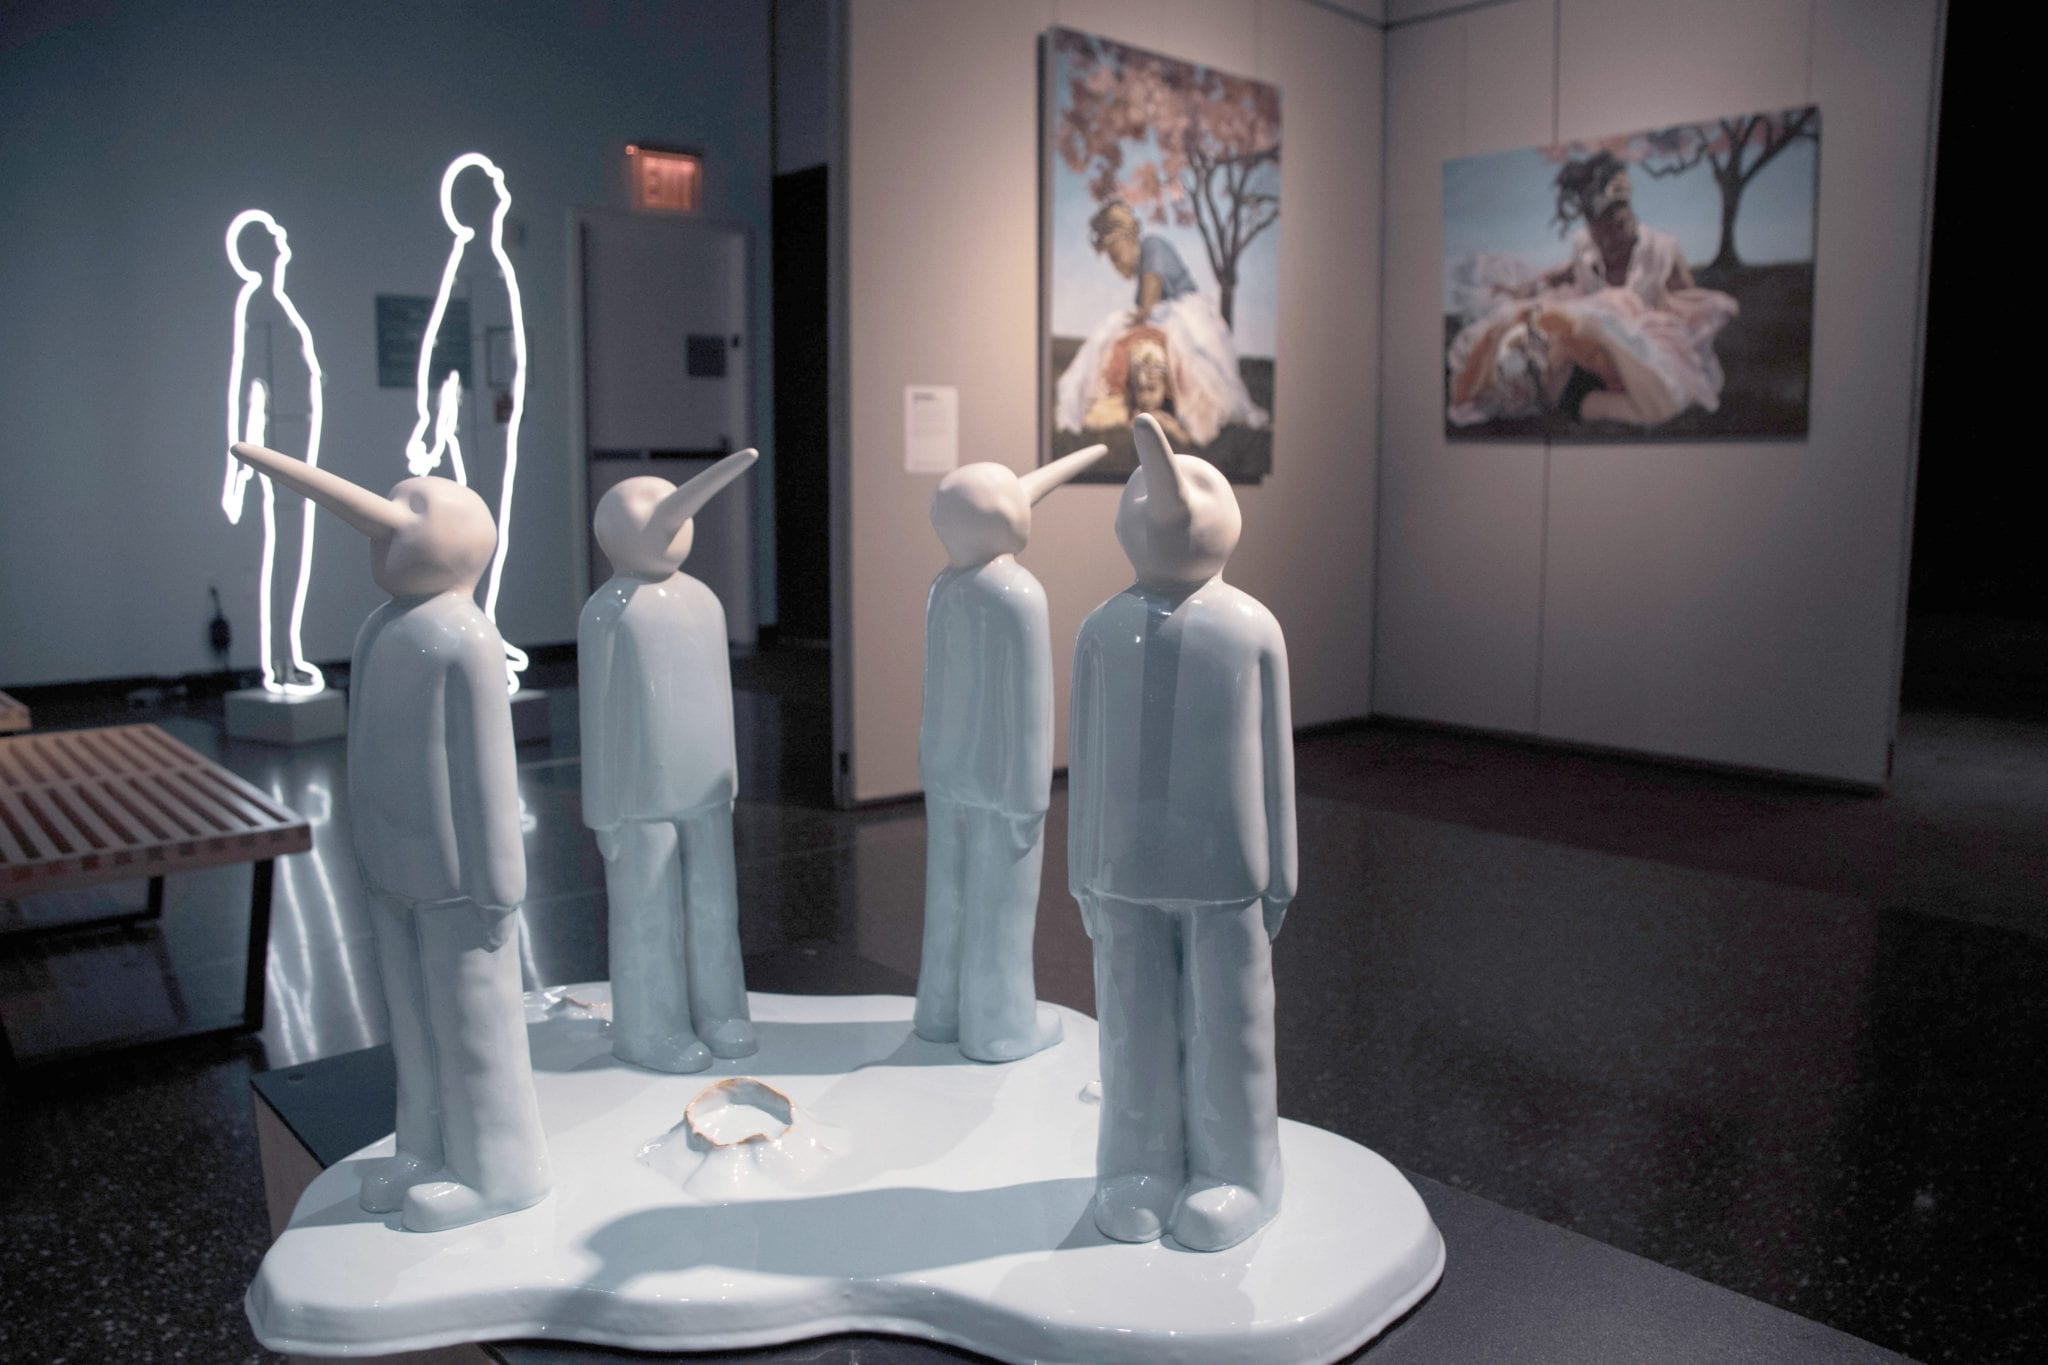 A group of sculptural figures stand on a platform with exaggerated pointed noses